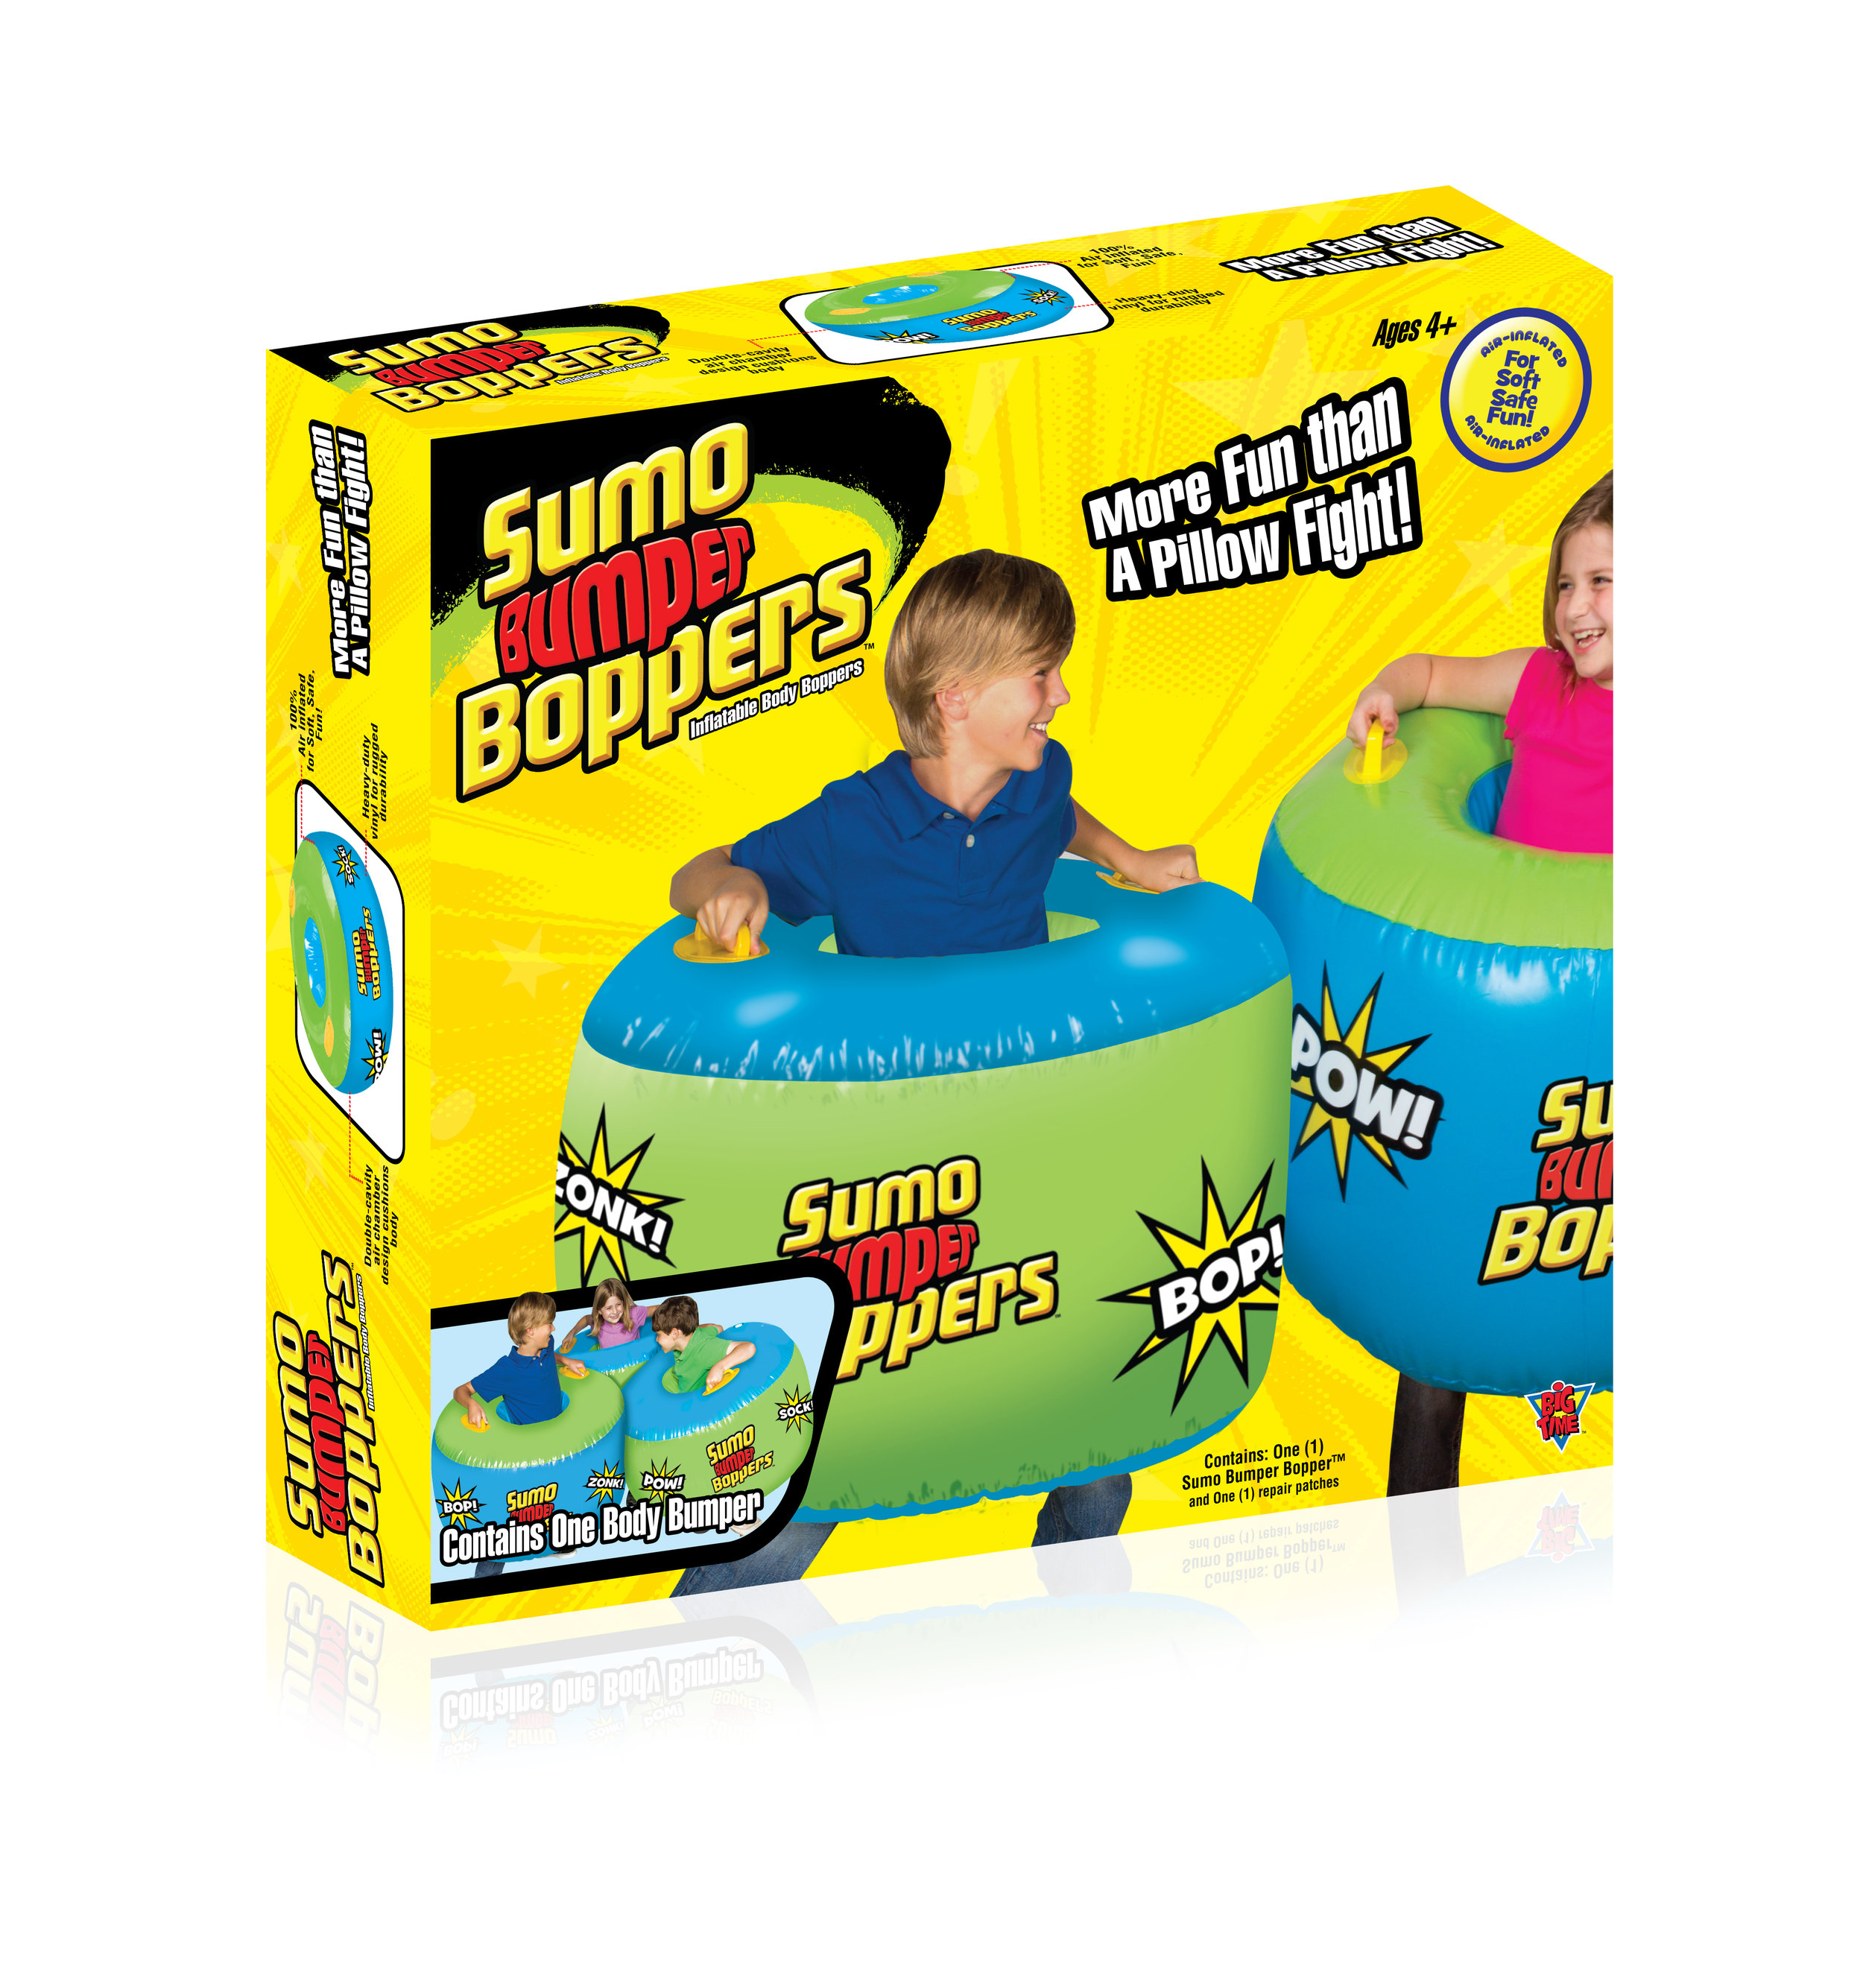 Single BumperBoppers package single pack B.jpg